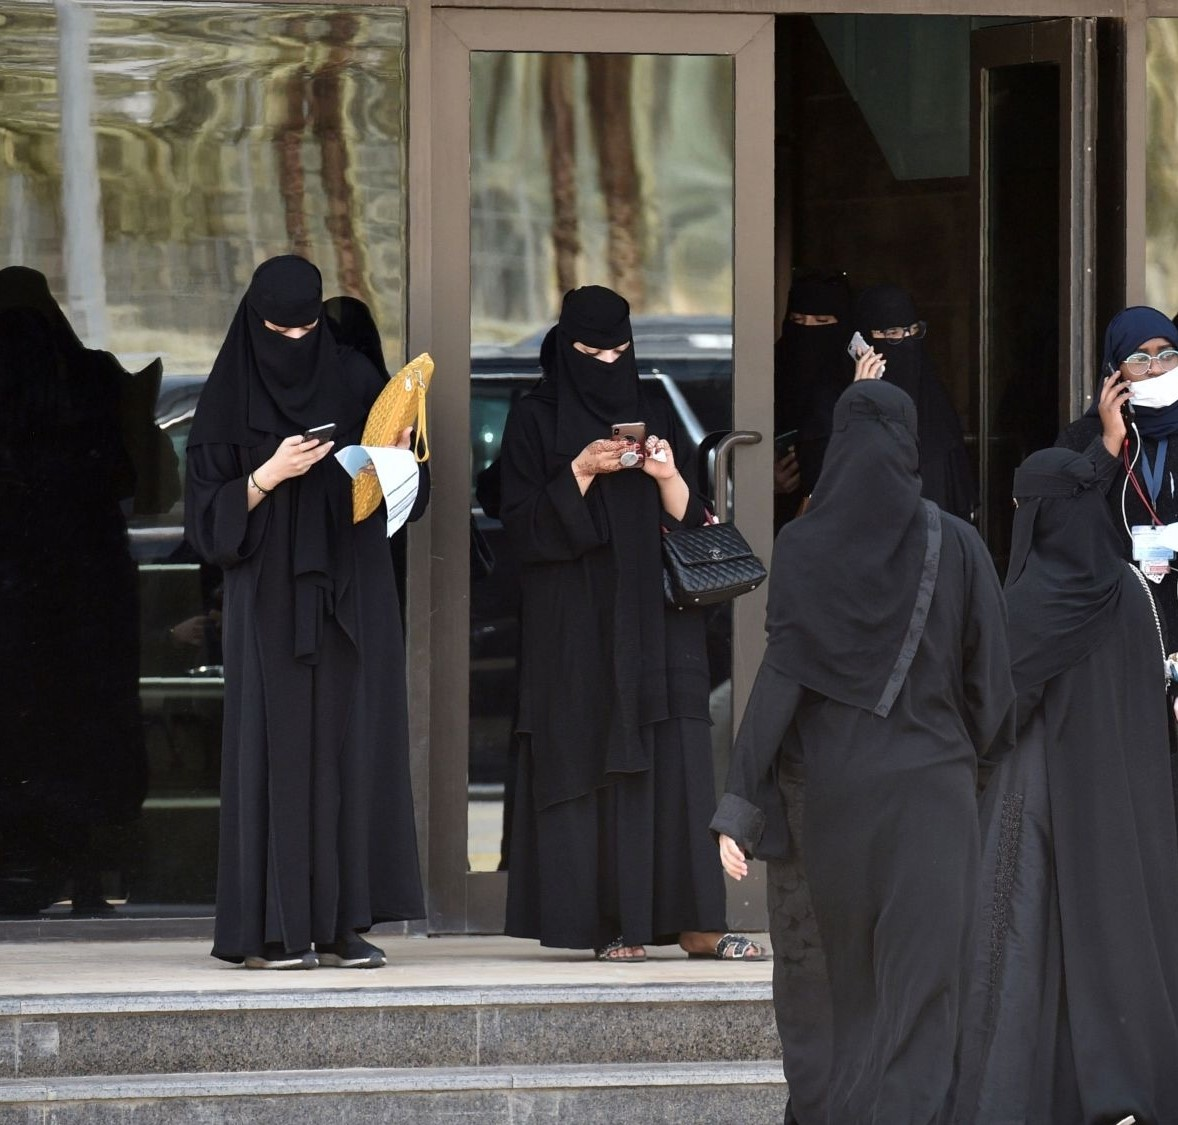 Saudi Arabia is intending to lift male guardianship restrictions on ladies